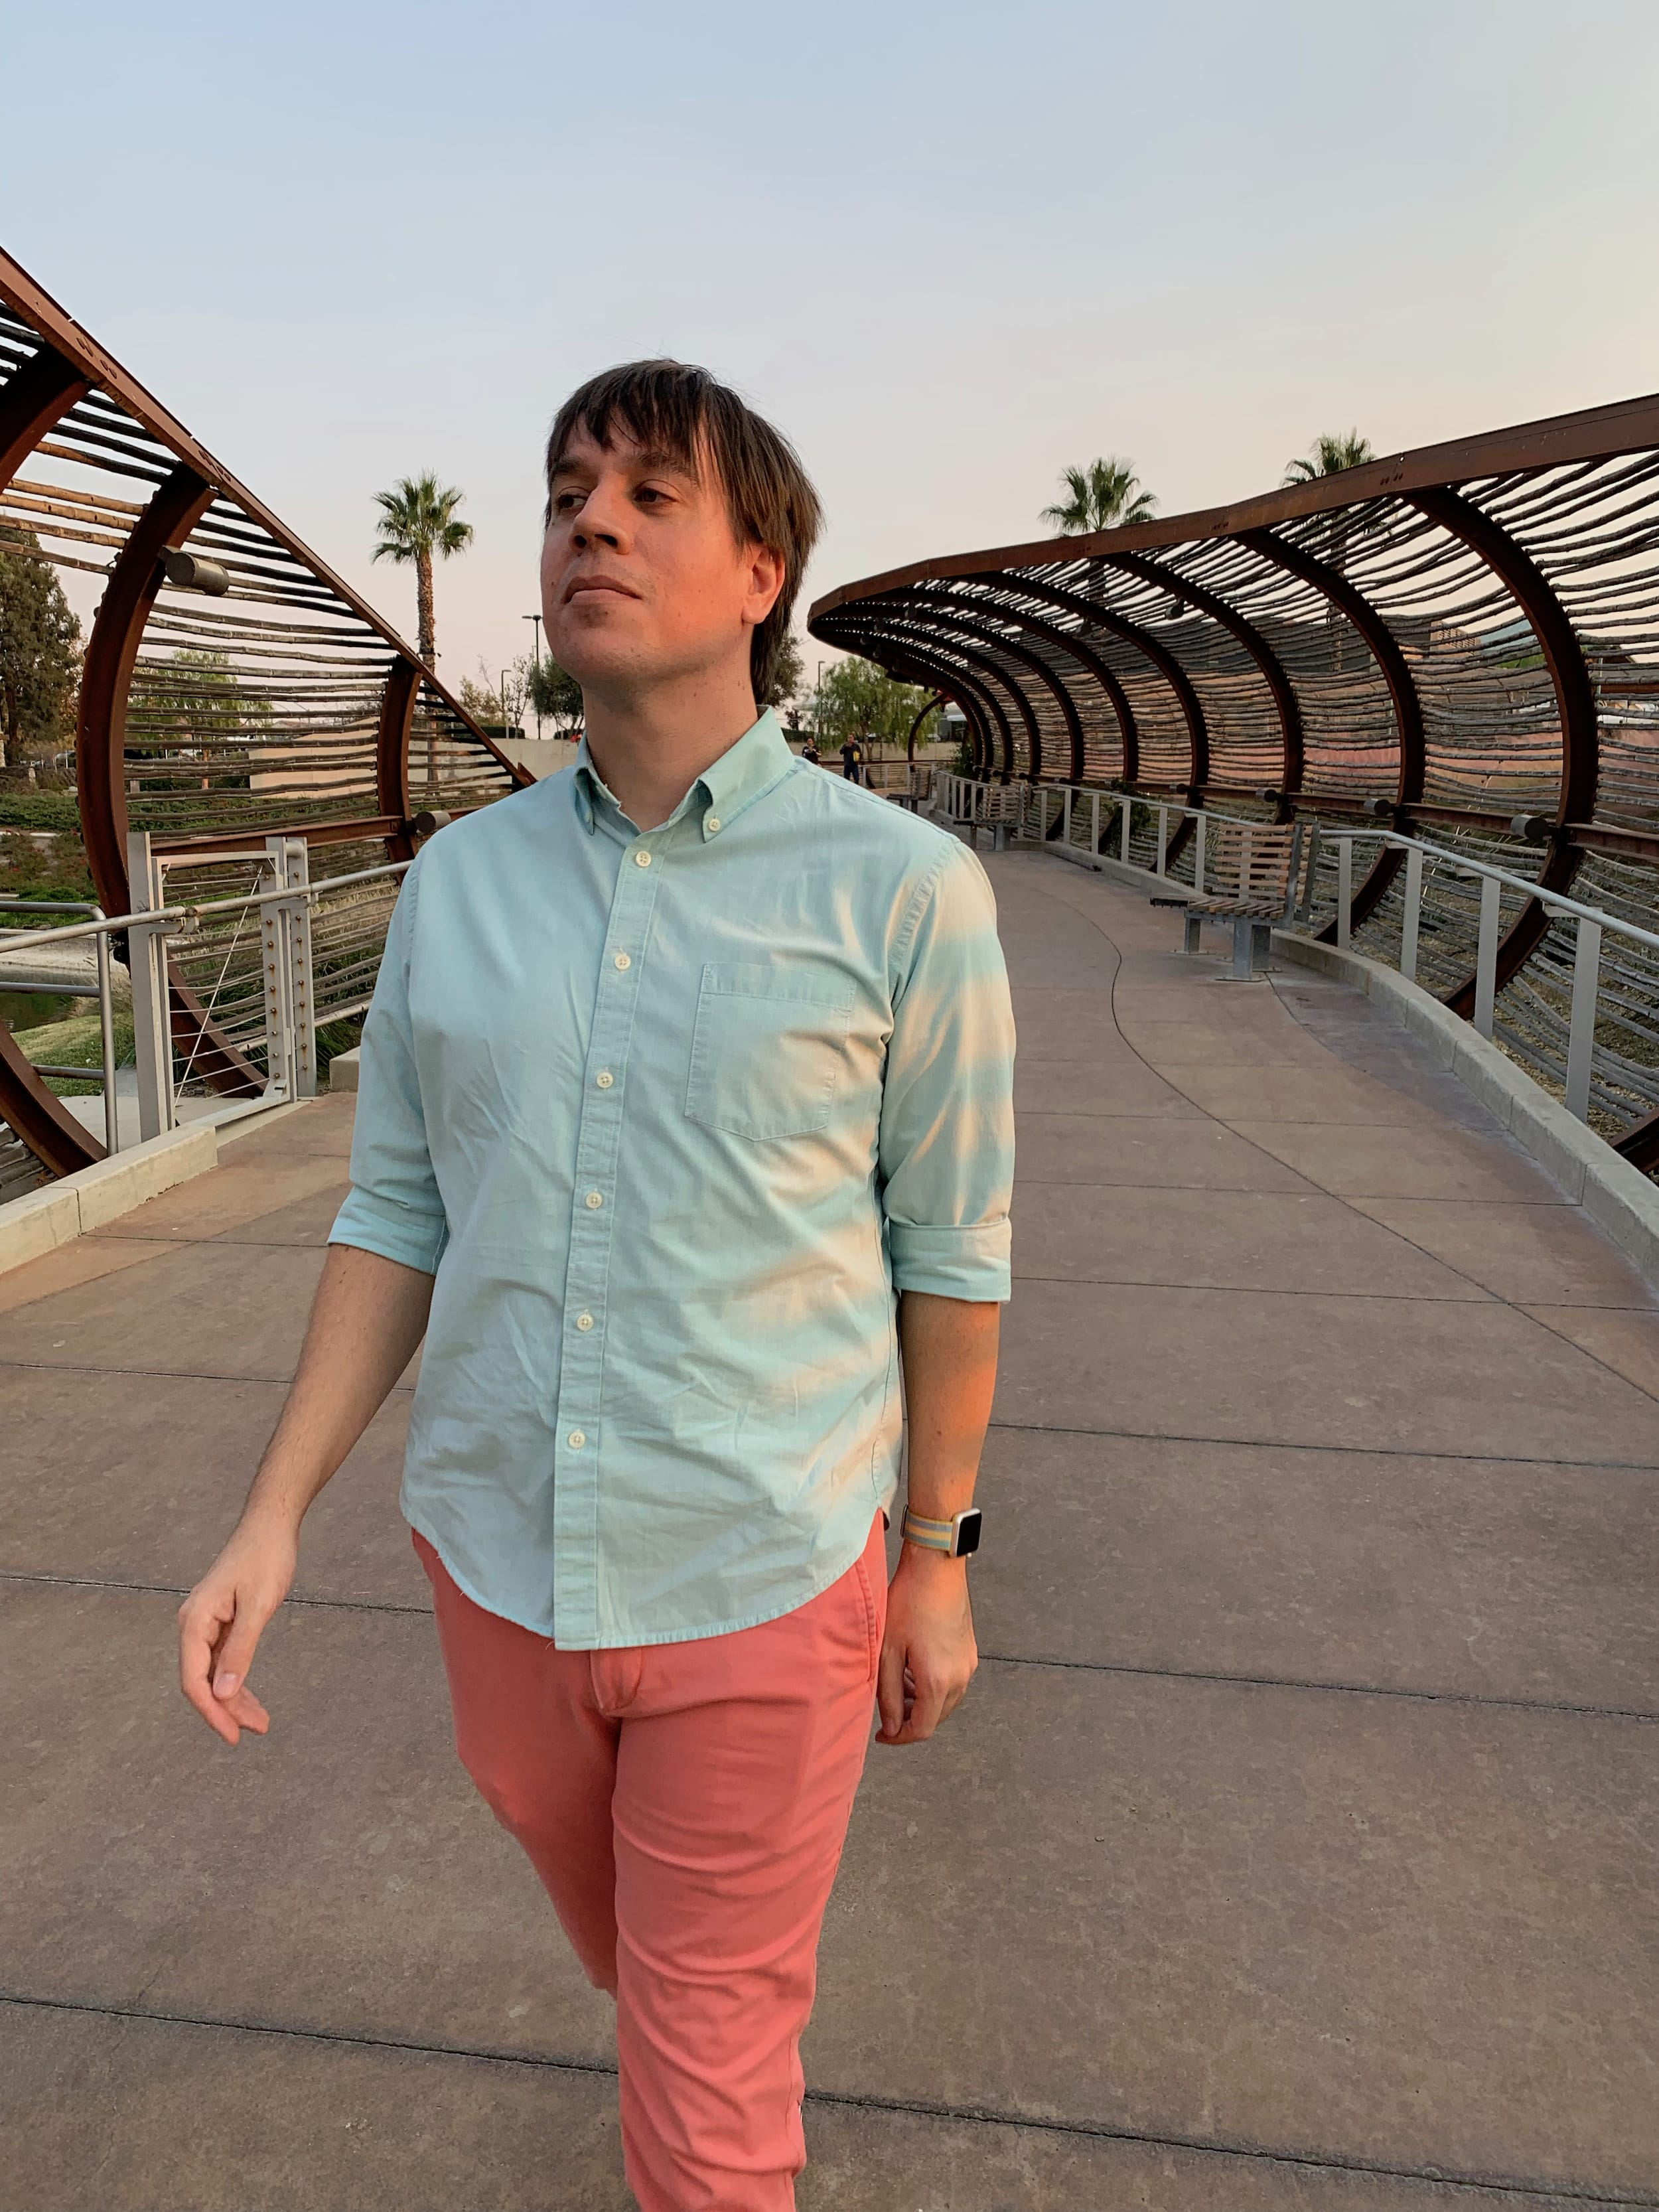 A man wearing a lime green shirt and coral pants walking down a cement walkway under a bamboo overhang.